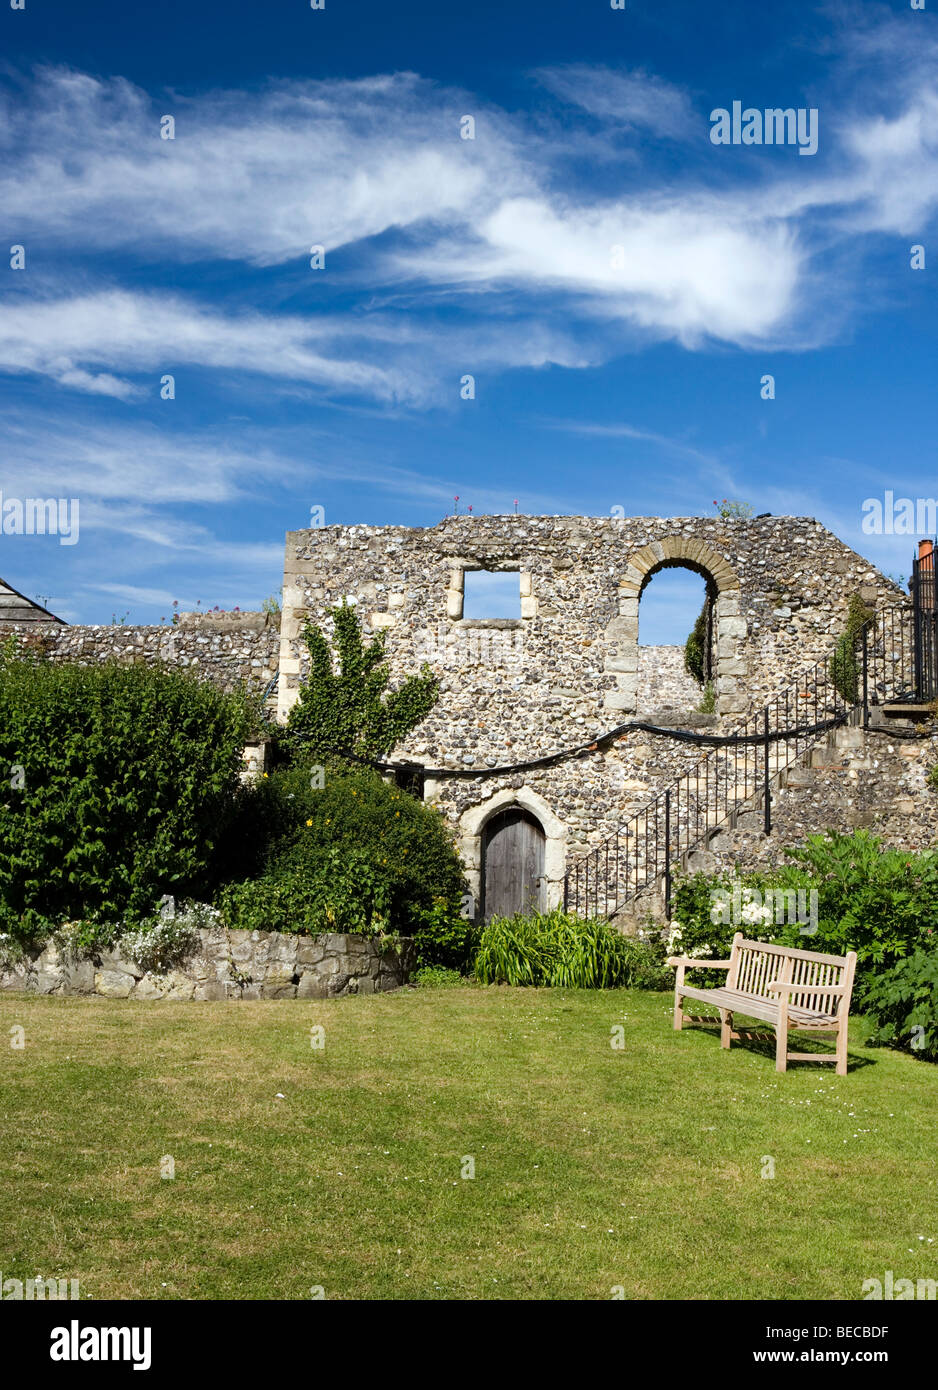 Garden next to the Norman Staircase at the King's School in Canterbury, Kent, UK. - Stock Image